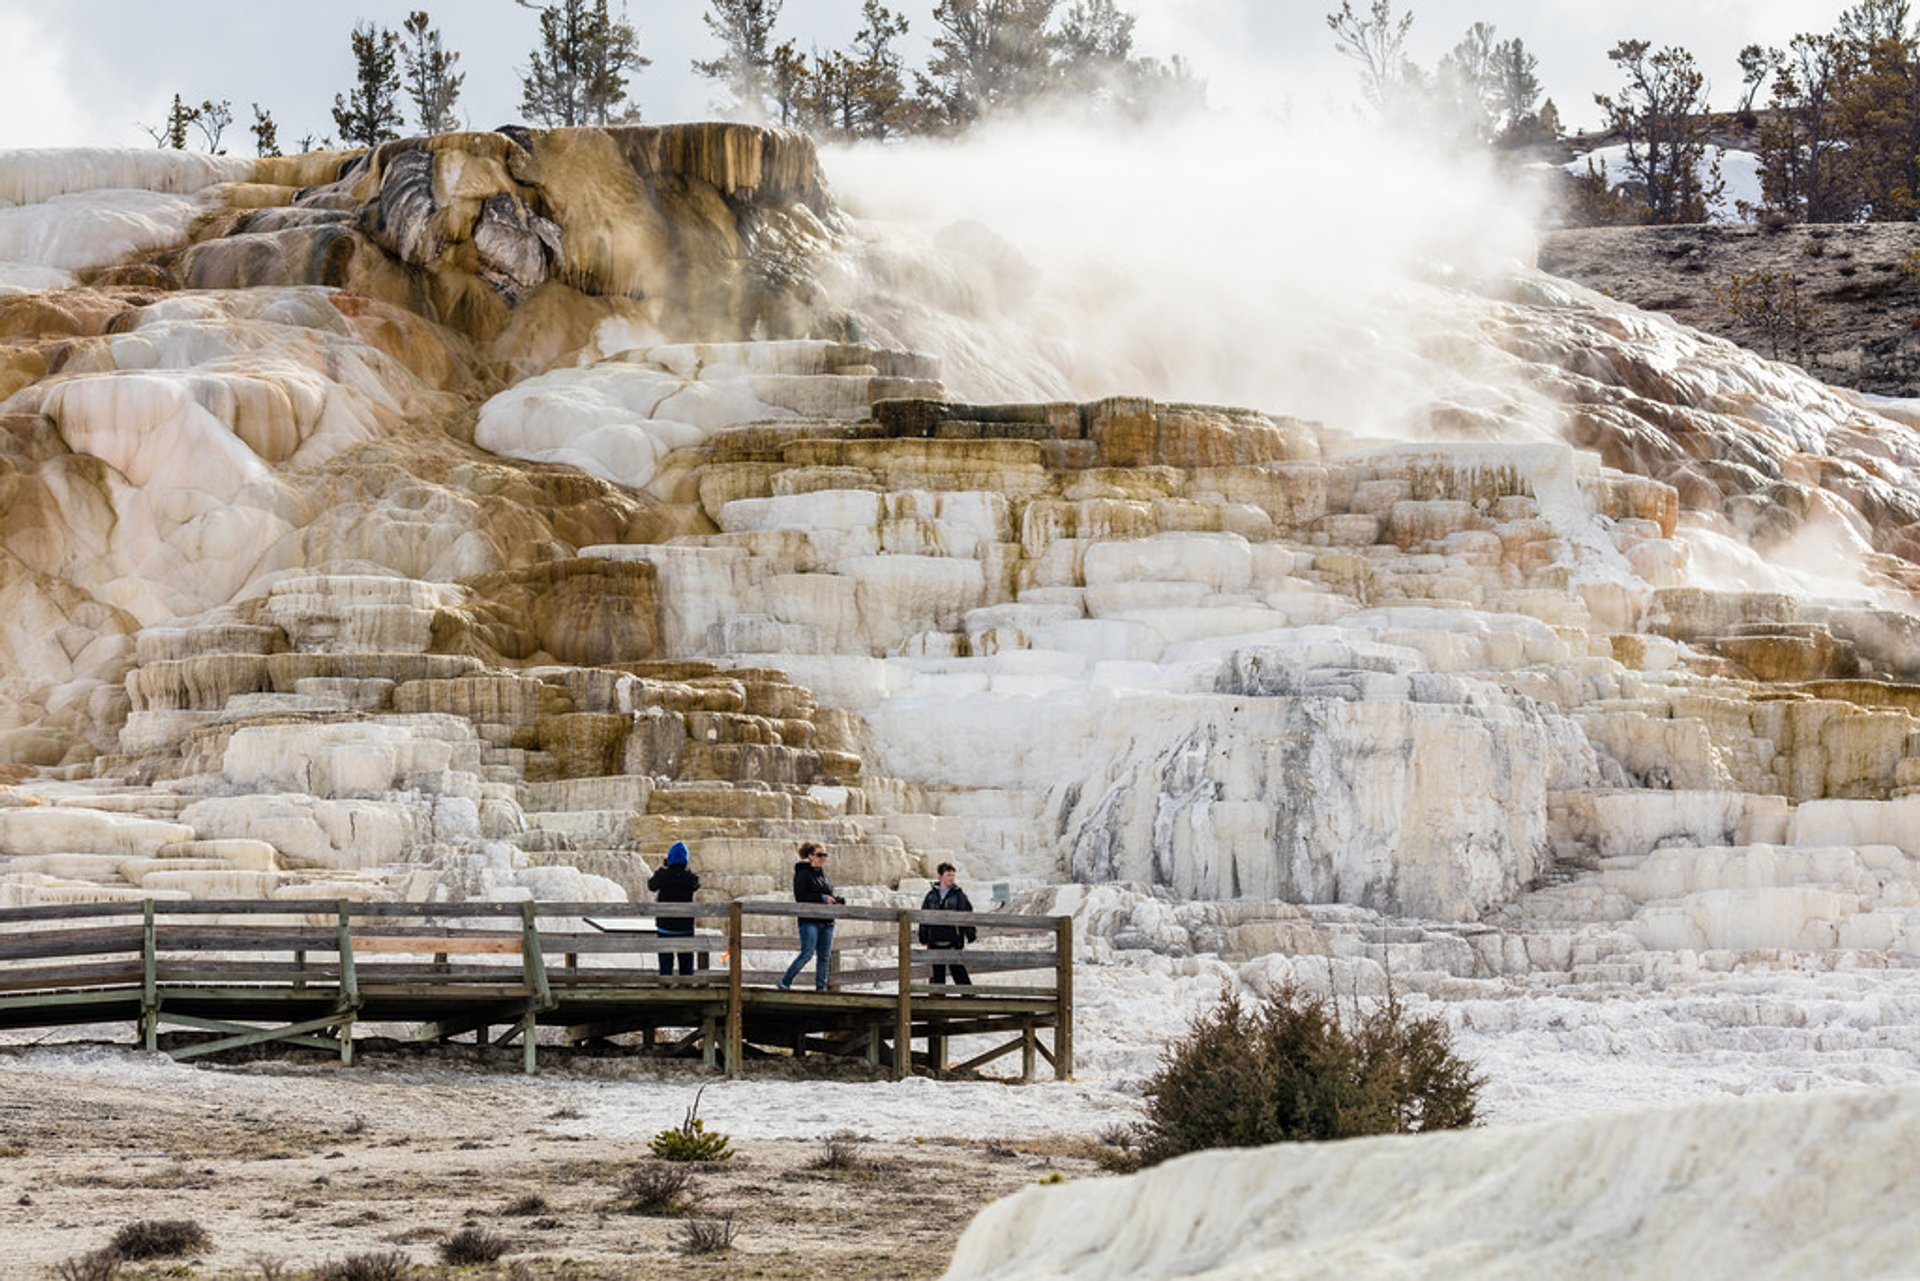 Mammoth Hot Springs in Yellowstone National Park 2019 - Best Time